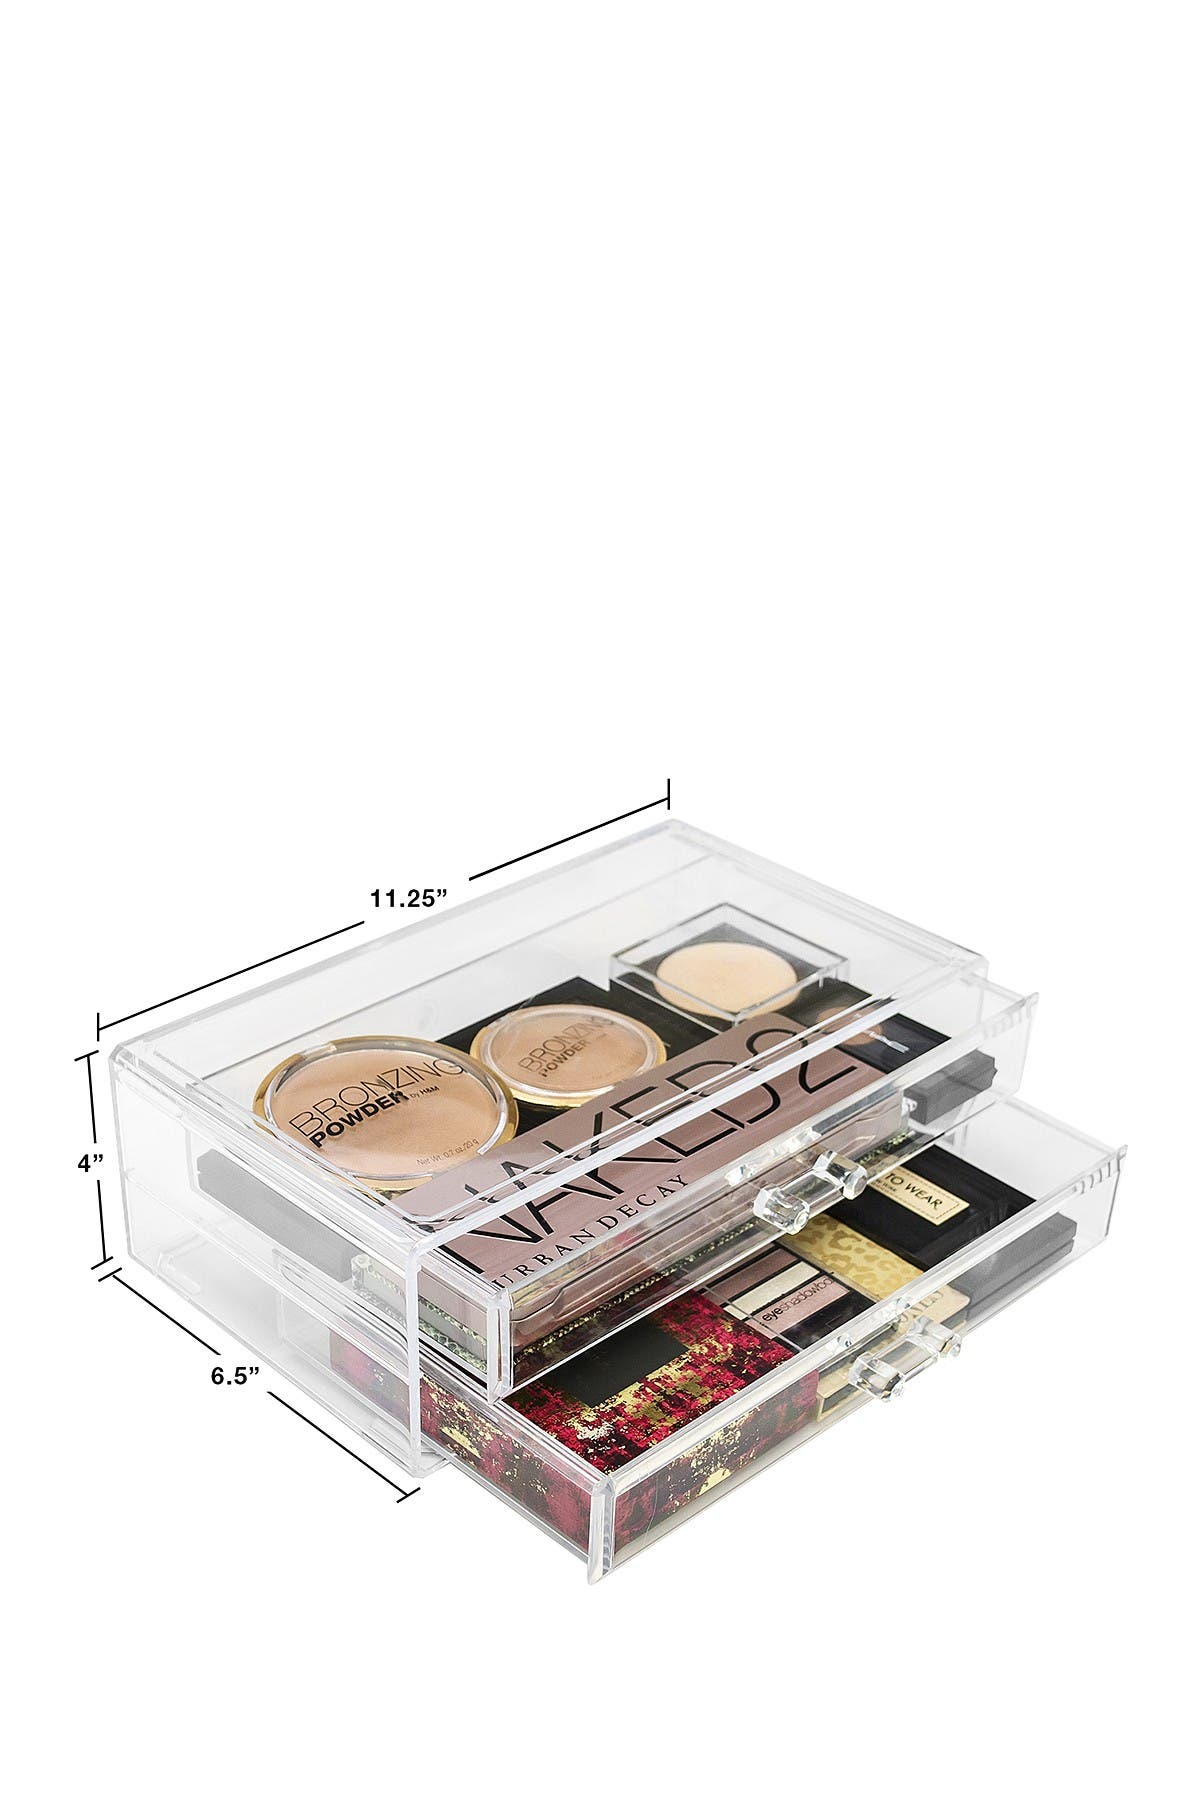 Image of Sorbus Acrylic 2 Drawer Cosmetics Makeup & Jewelry Storage Case Display Set